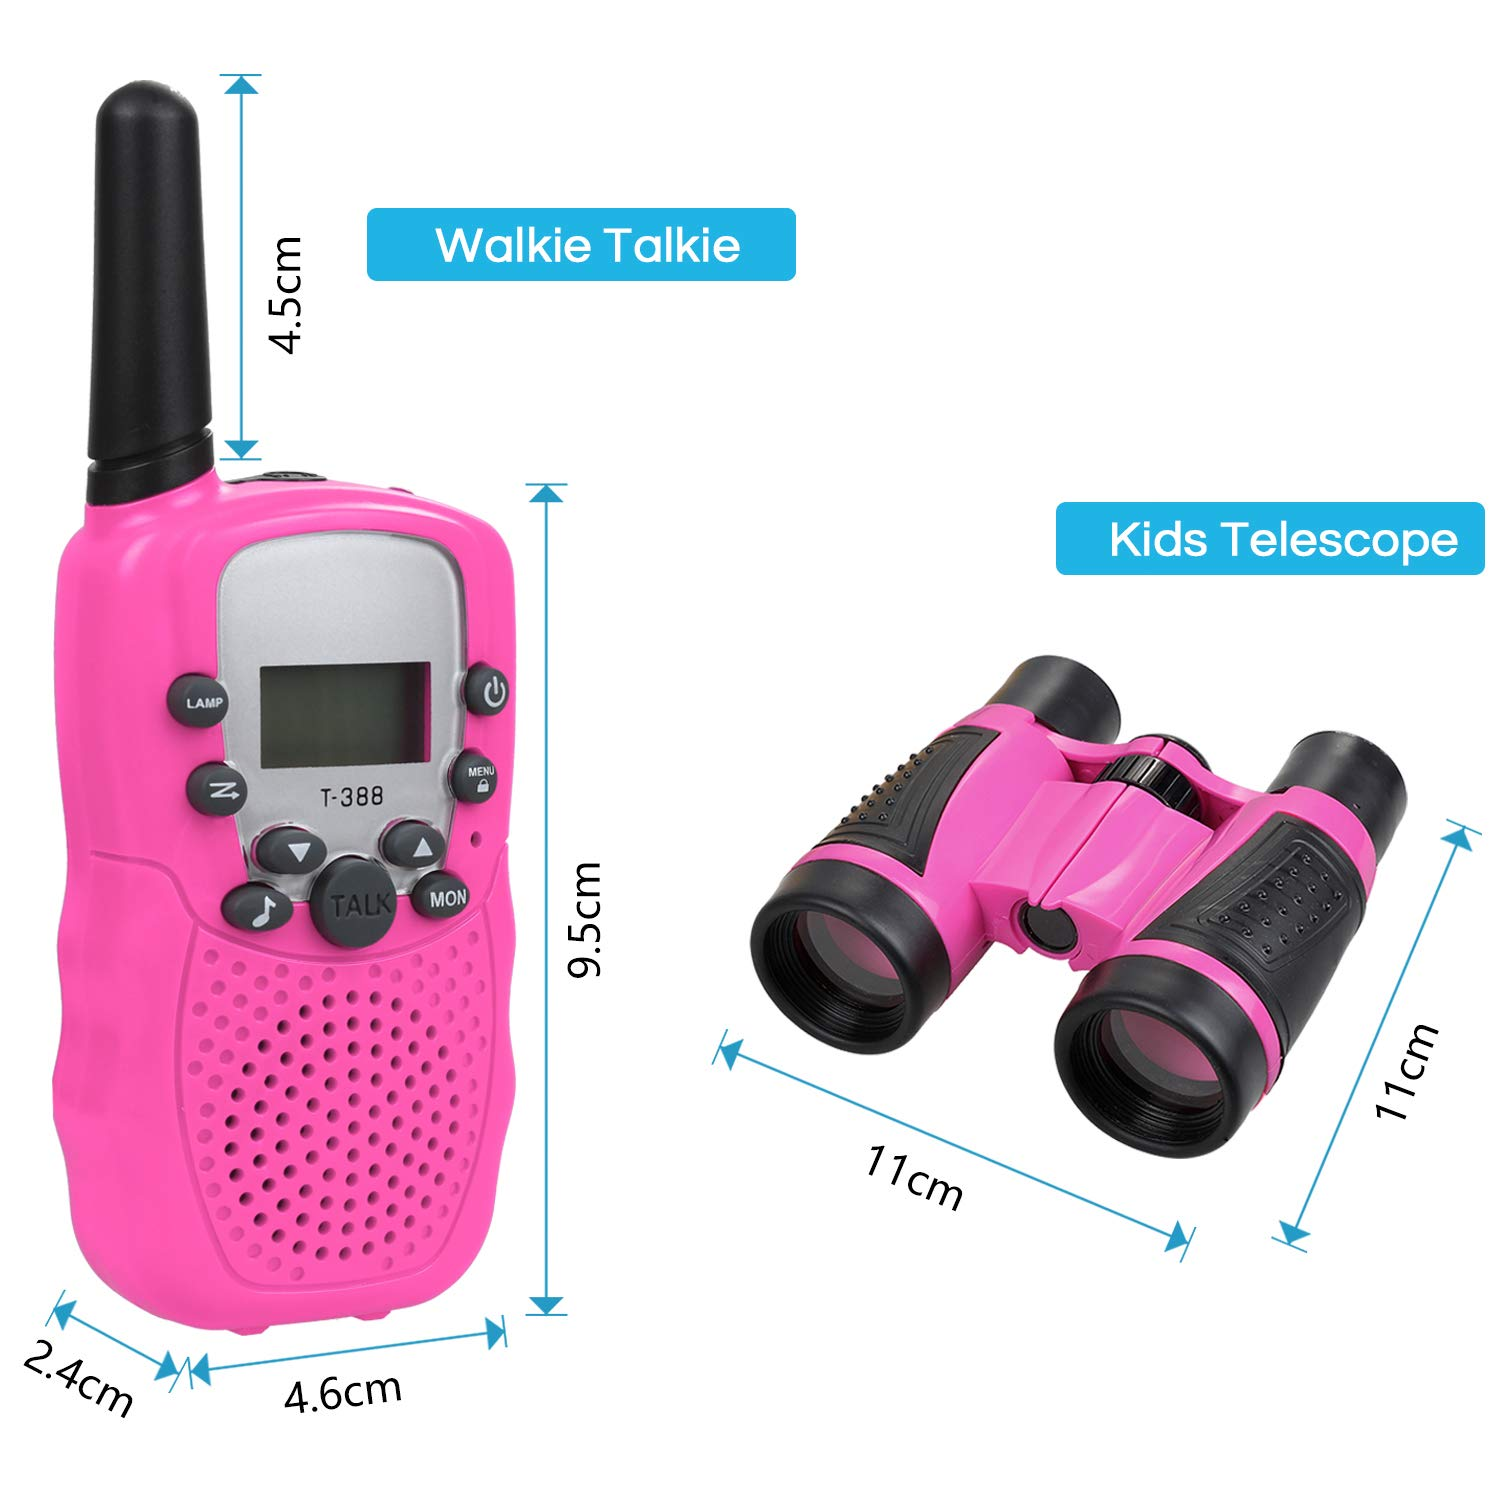 Anpro walkie talkies and Telescope Sets for Kids, 22 Channel 2 Way Radio 3 Mile Long Range Handheld Kids Walkie Talkies, Best Gifts & Top Toys for Boy & Girls for Outdoor Adventure Game(Pink) by Anpro (Image #2)